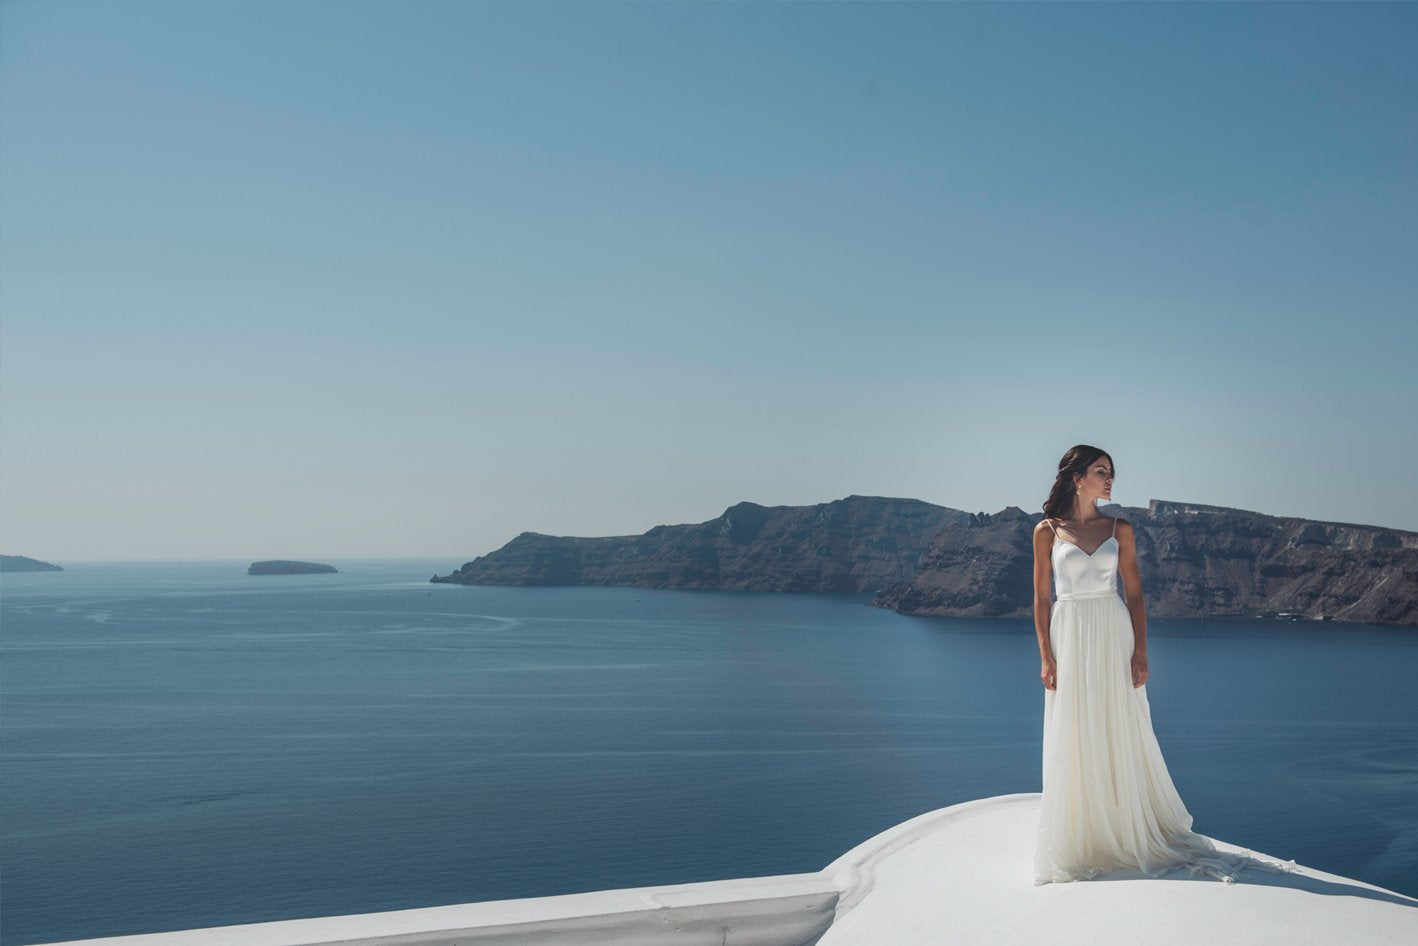 Our journey through Santorini